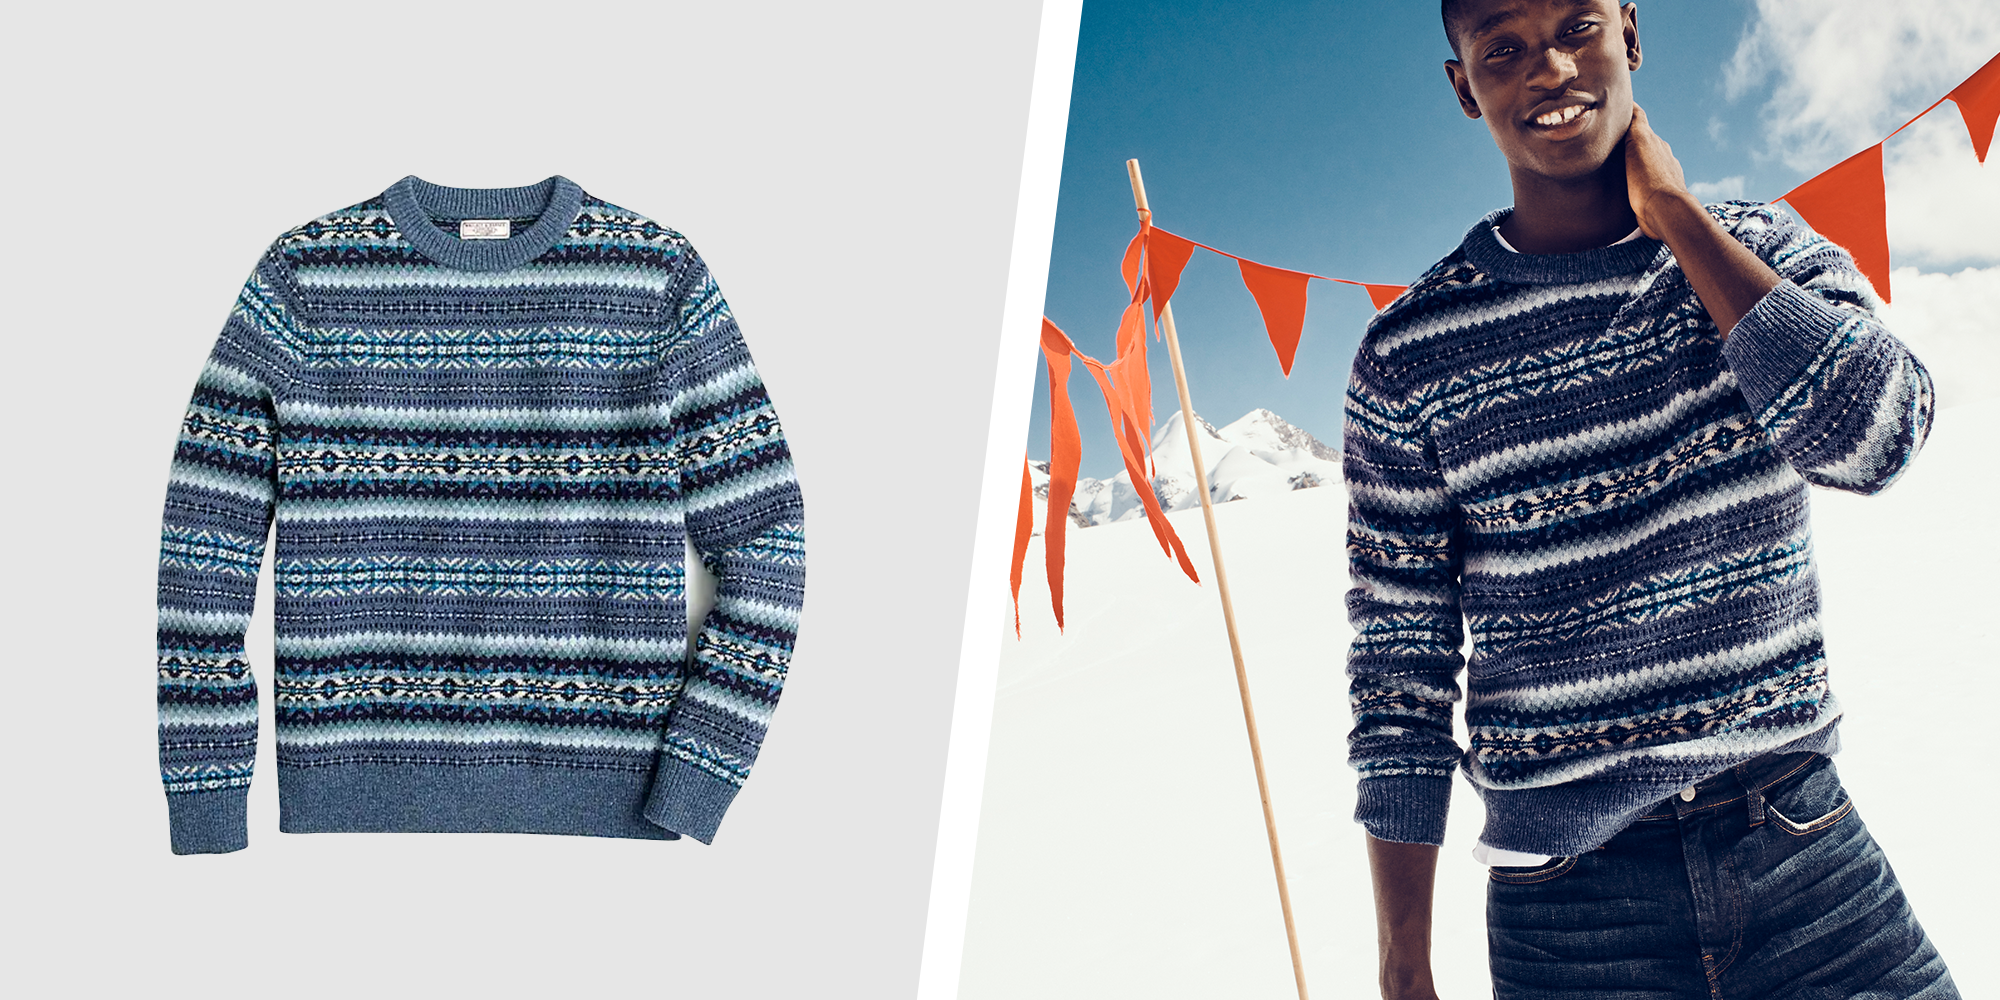 Six Pack of Style: 6 Holiday Sweaters That Don't Scream Ugly.